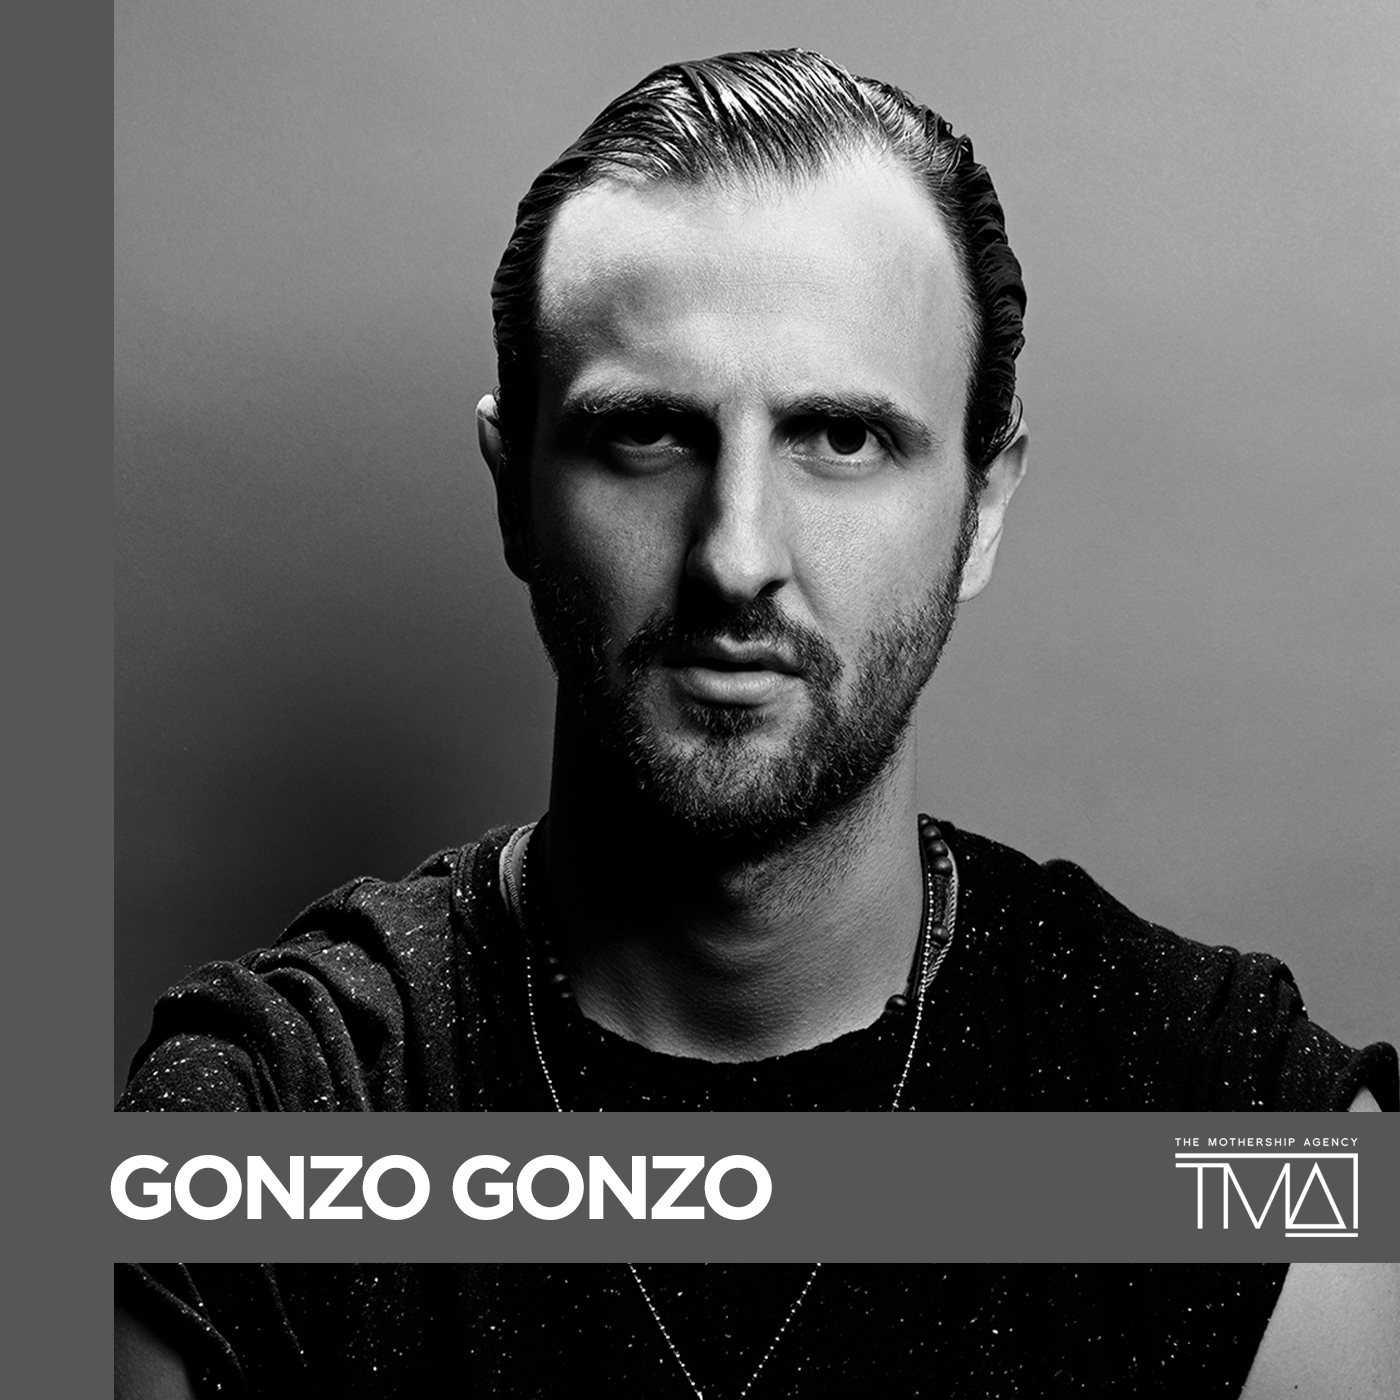 THE COLLECTIVE SERIES: TMA – Gonzo Gonzo